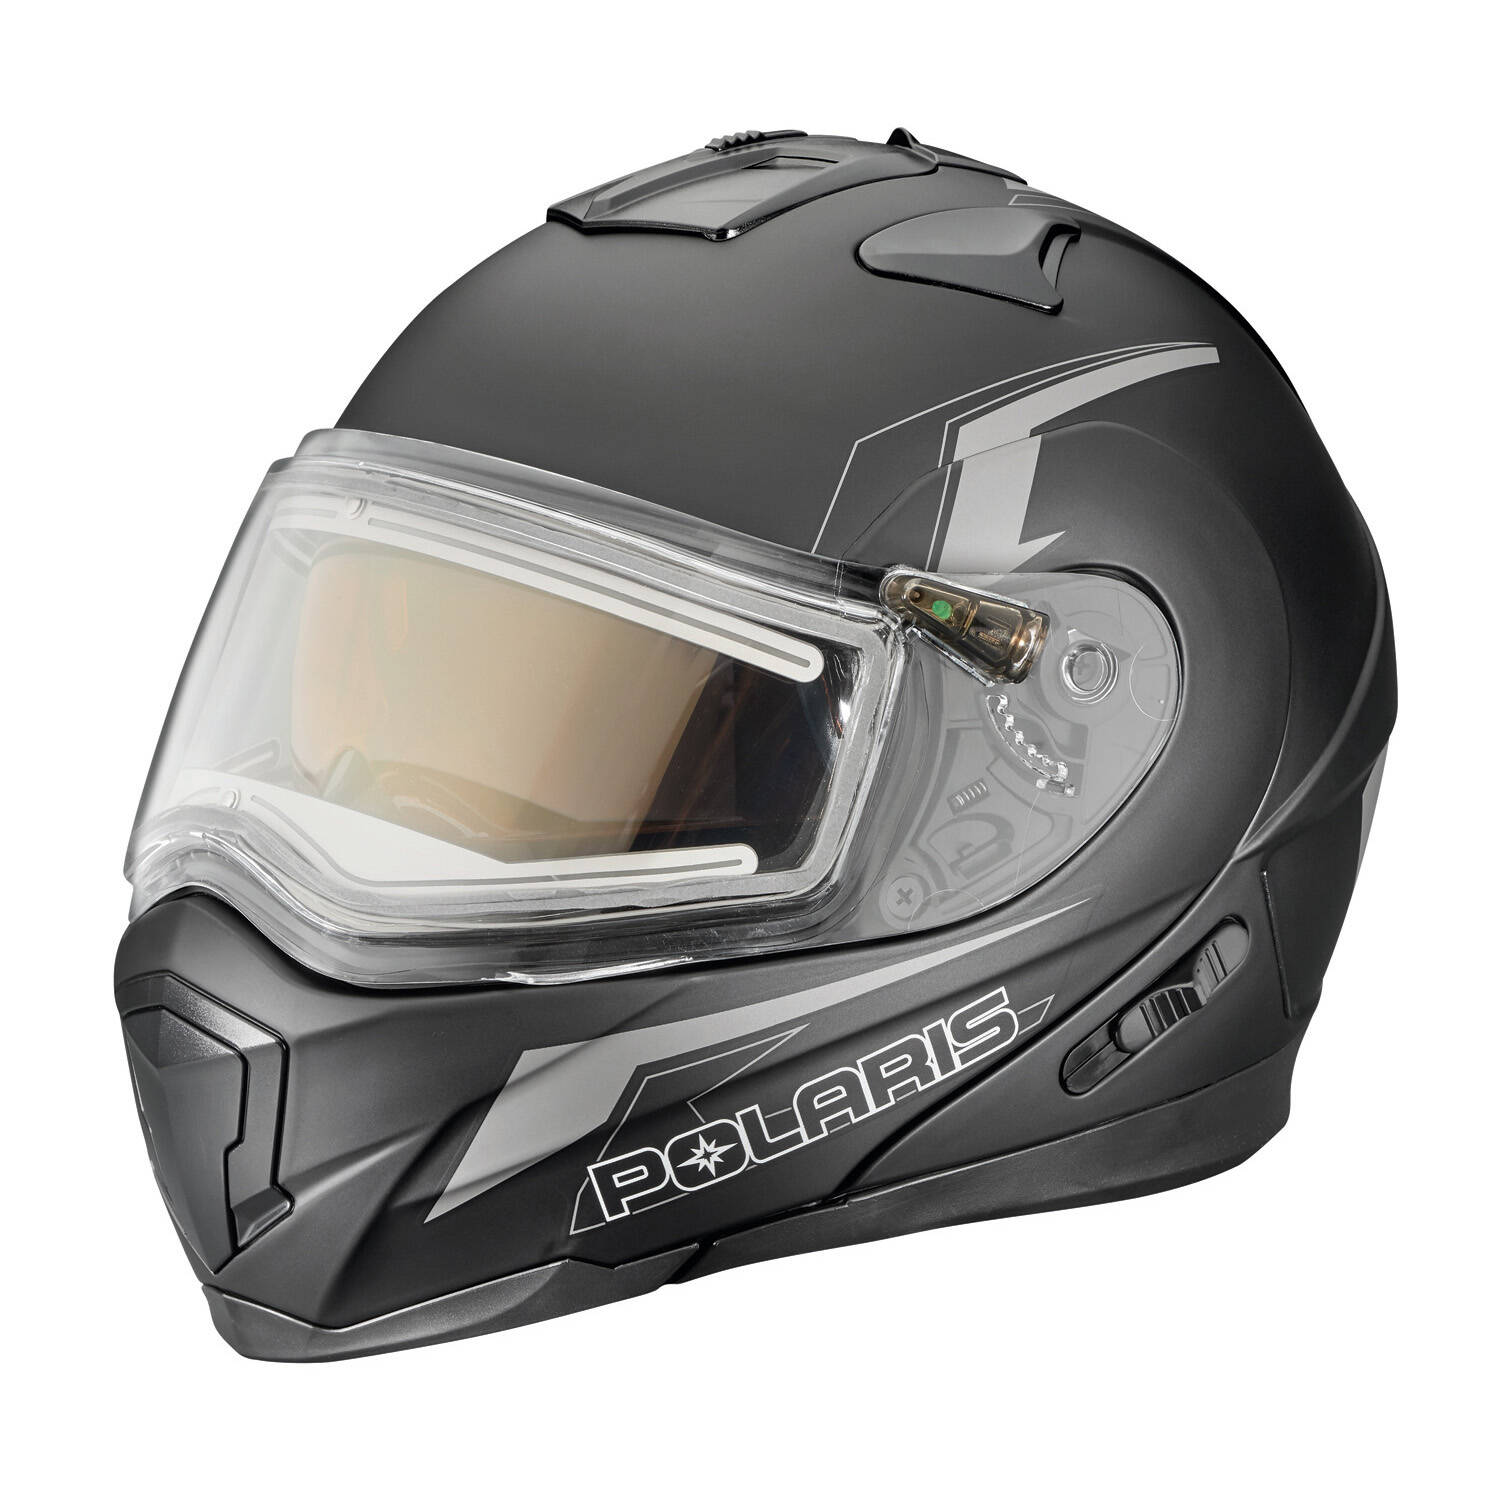 Modular Adult Helmet with Electric Shield, Black/Gray